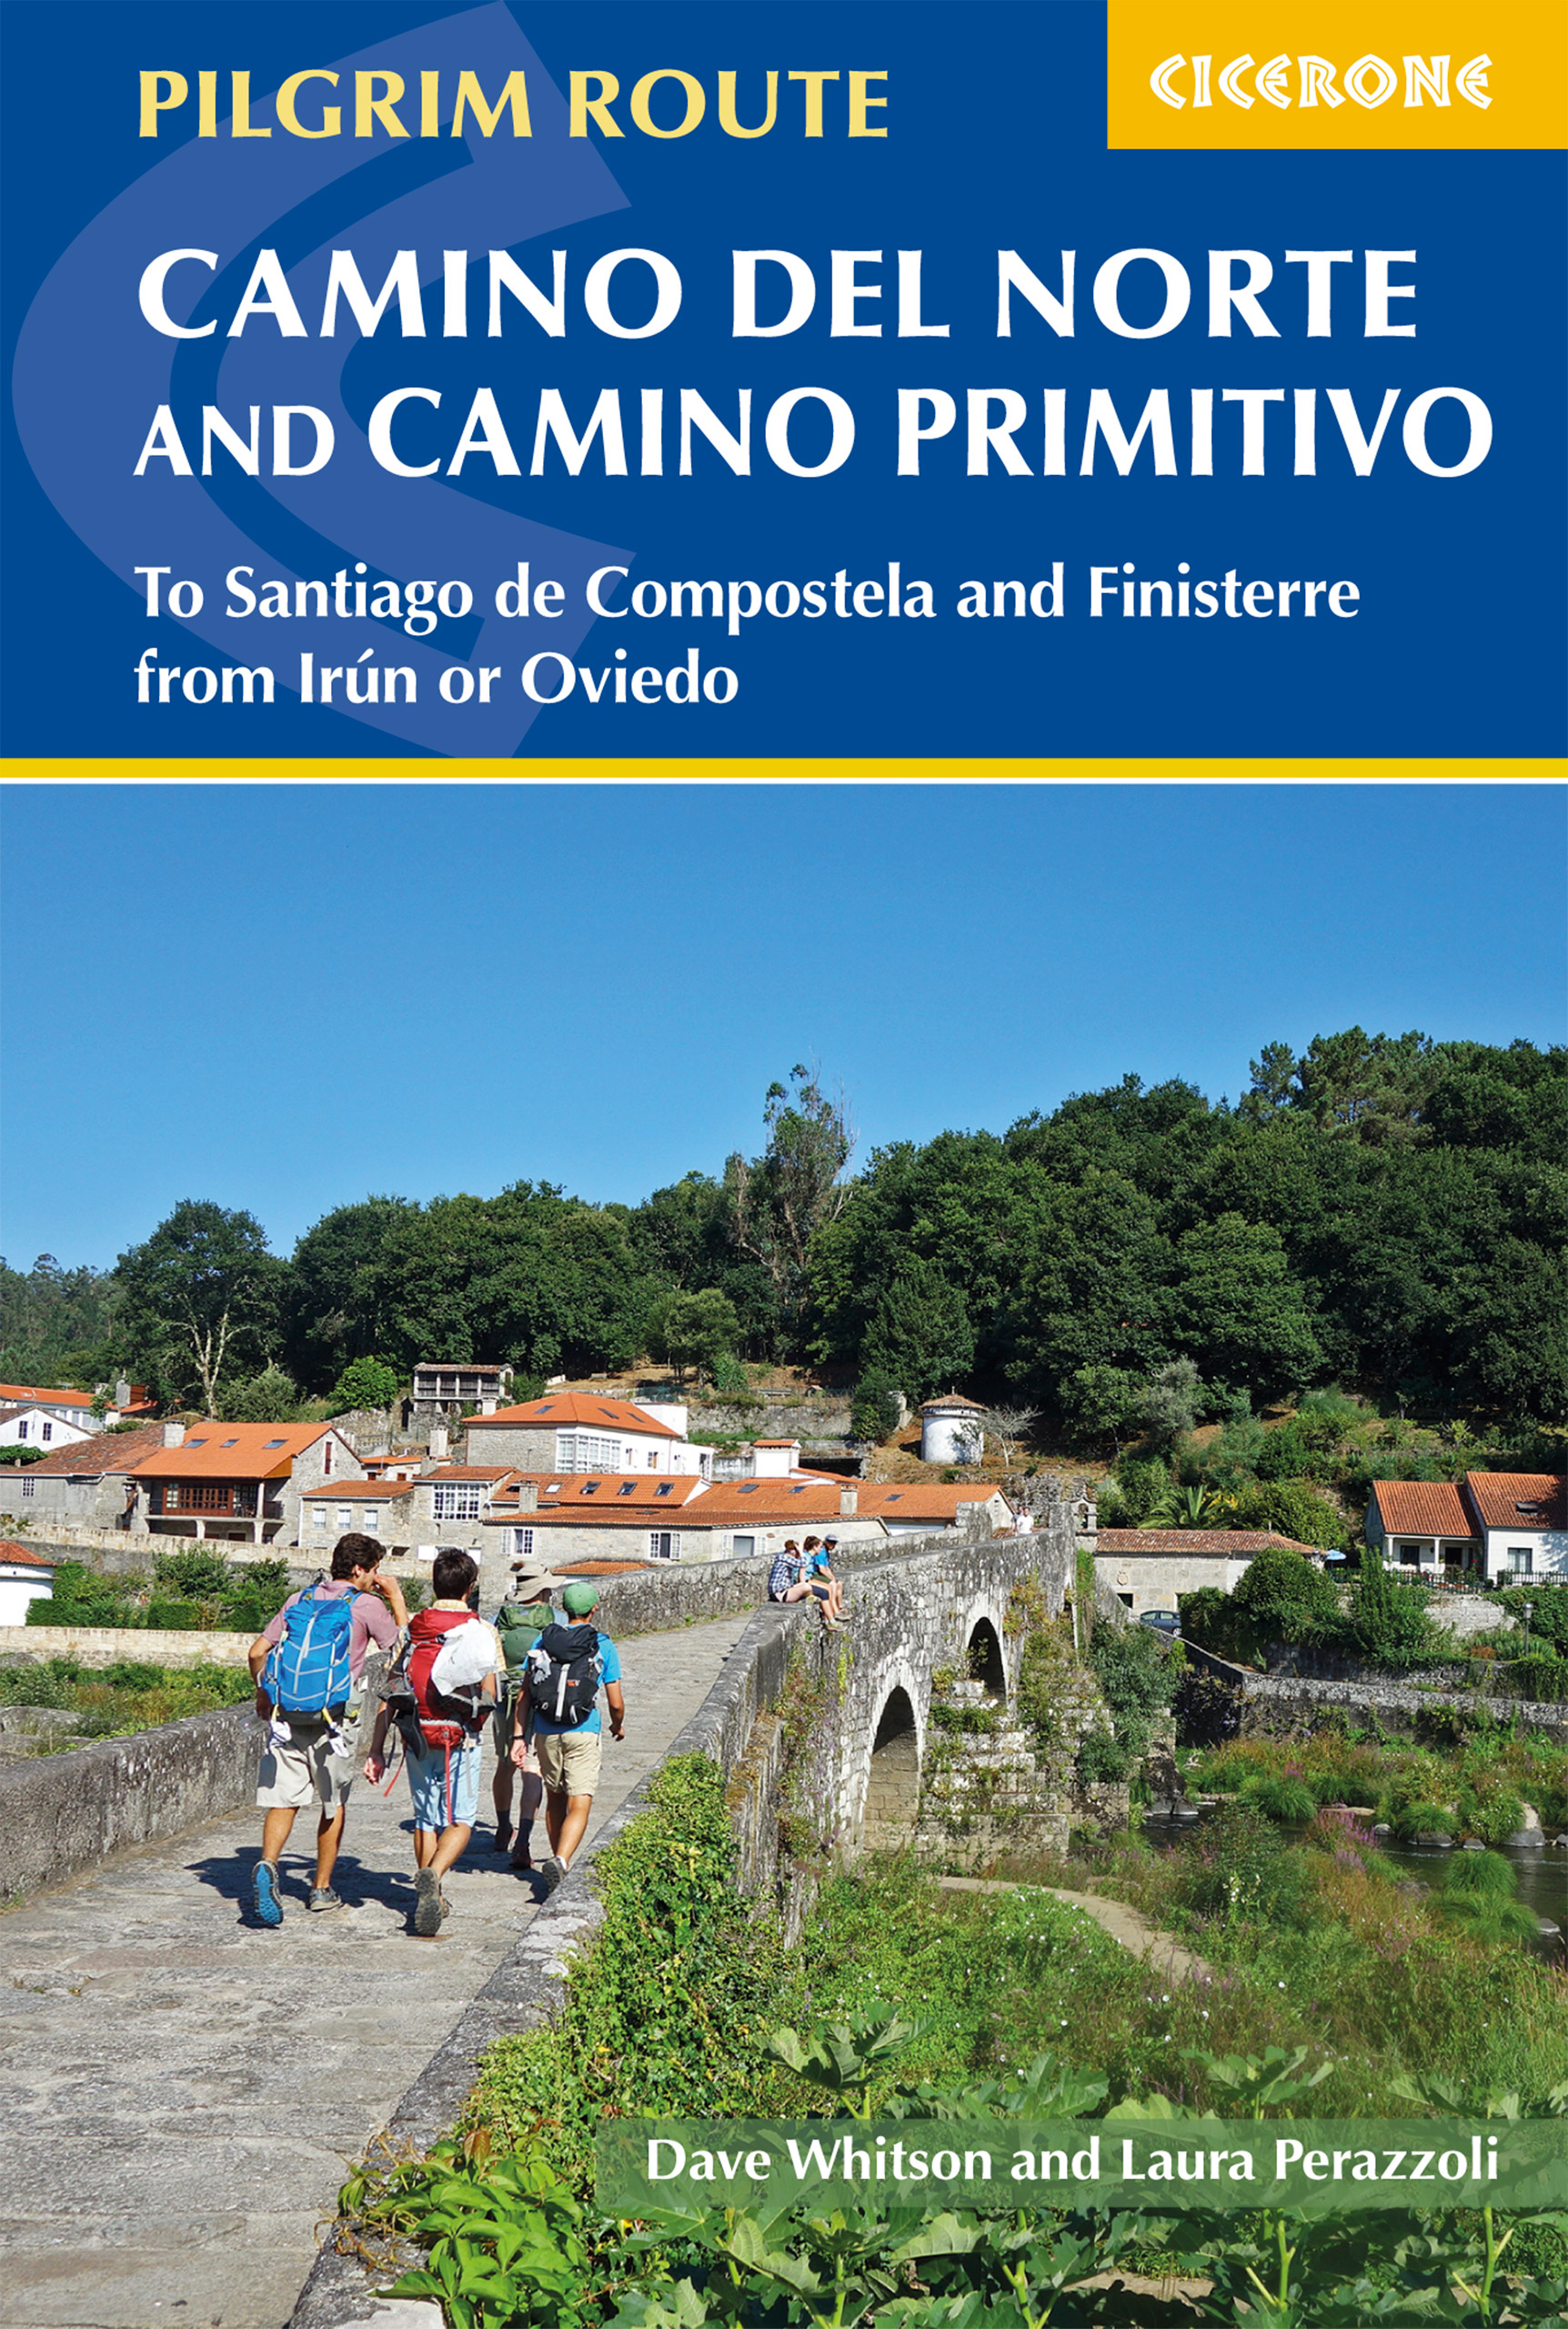 Camino del Norte and Camino Primitivo